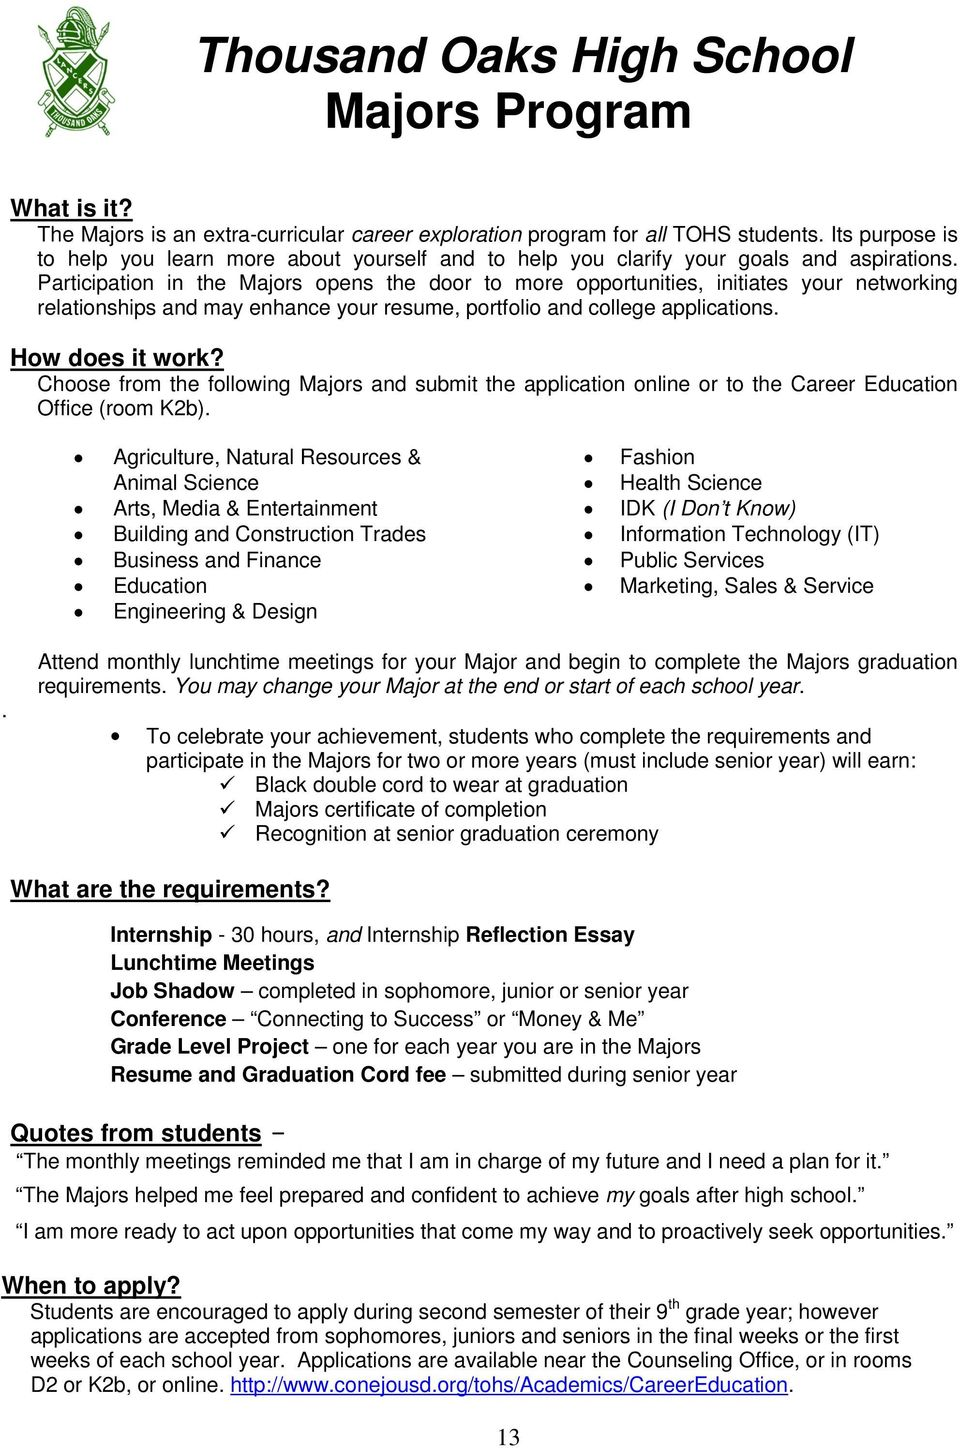 Essay Writings In English Need Help Do My Essay My Plan After High School Graduation Essay Environmental Science Essay also Descriptive Essay Topics For High School Students An Essay Discussing My Career Aspirations Free Critical Analysis  My English Essay